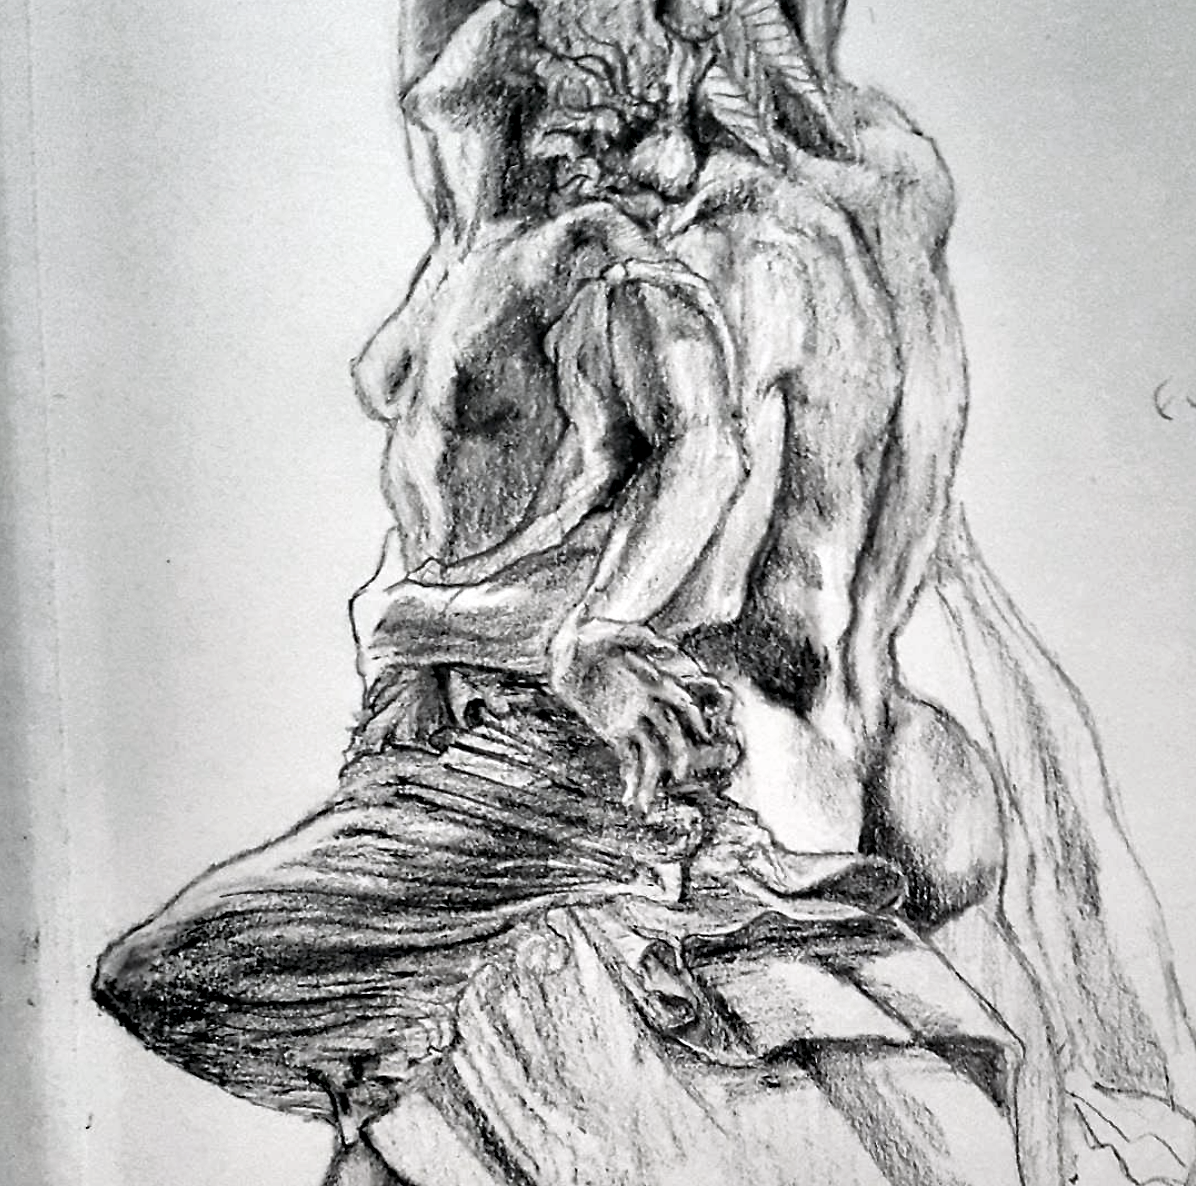 Sketched in 2016.  ~  The Rape of Polyxena (sketched from behind),  sculpture by Pio Fedi, in Loggia Dei Lanzi,  Piazza Della Signoria, Florence, Italy.